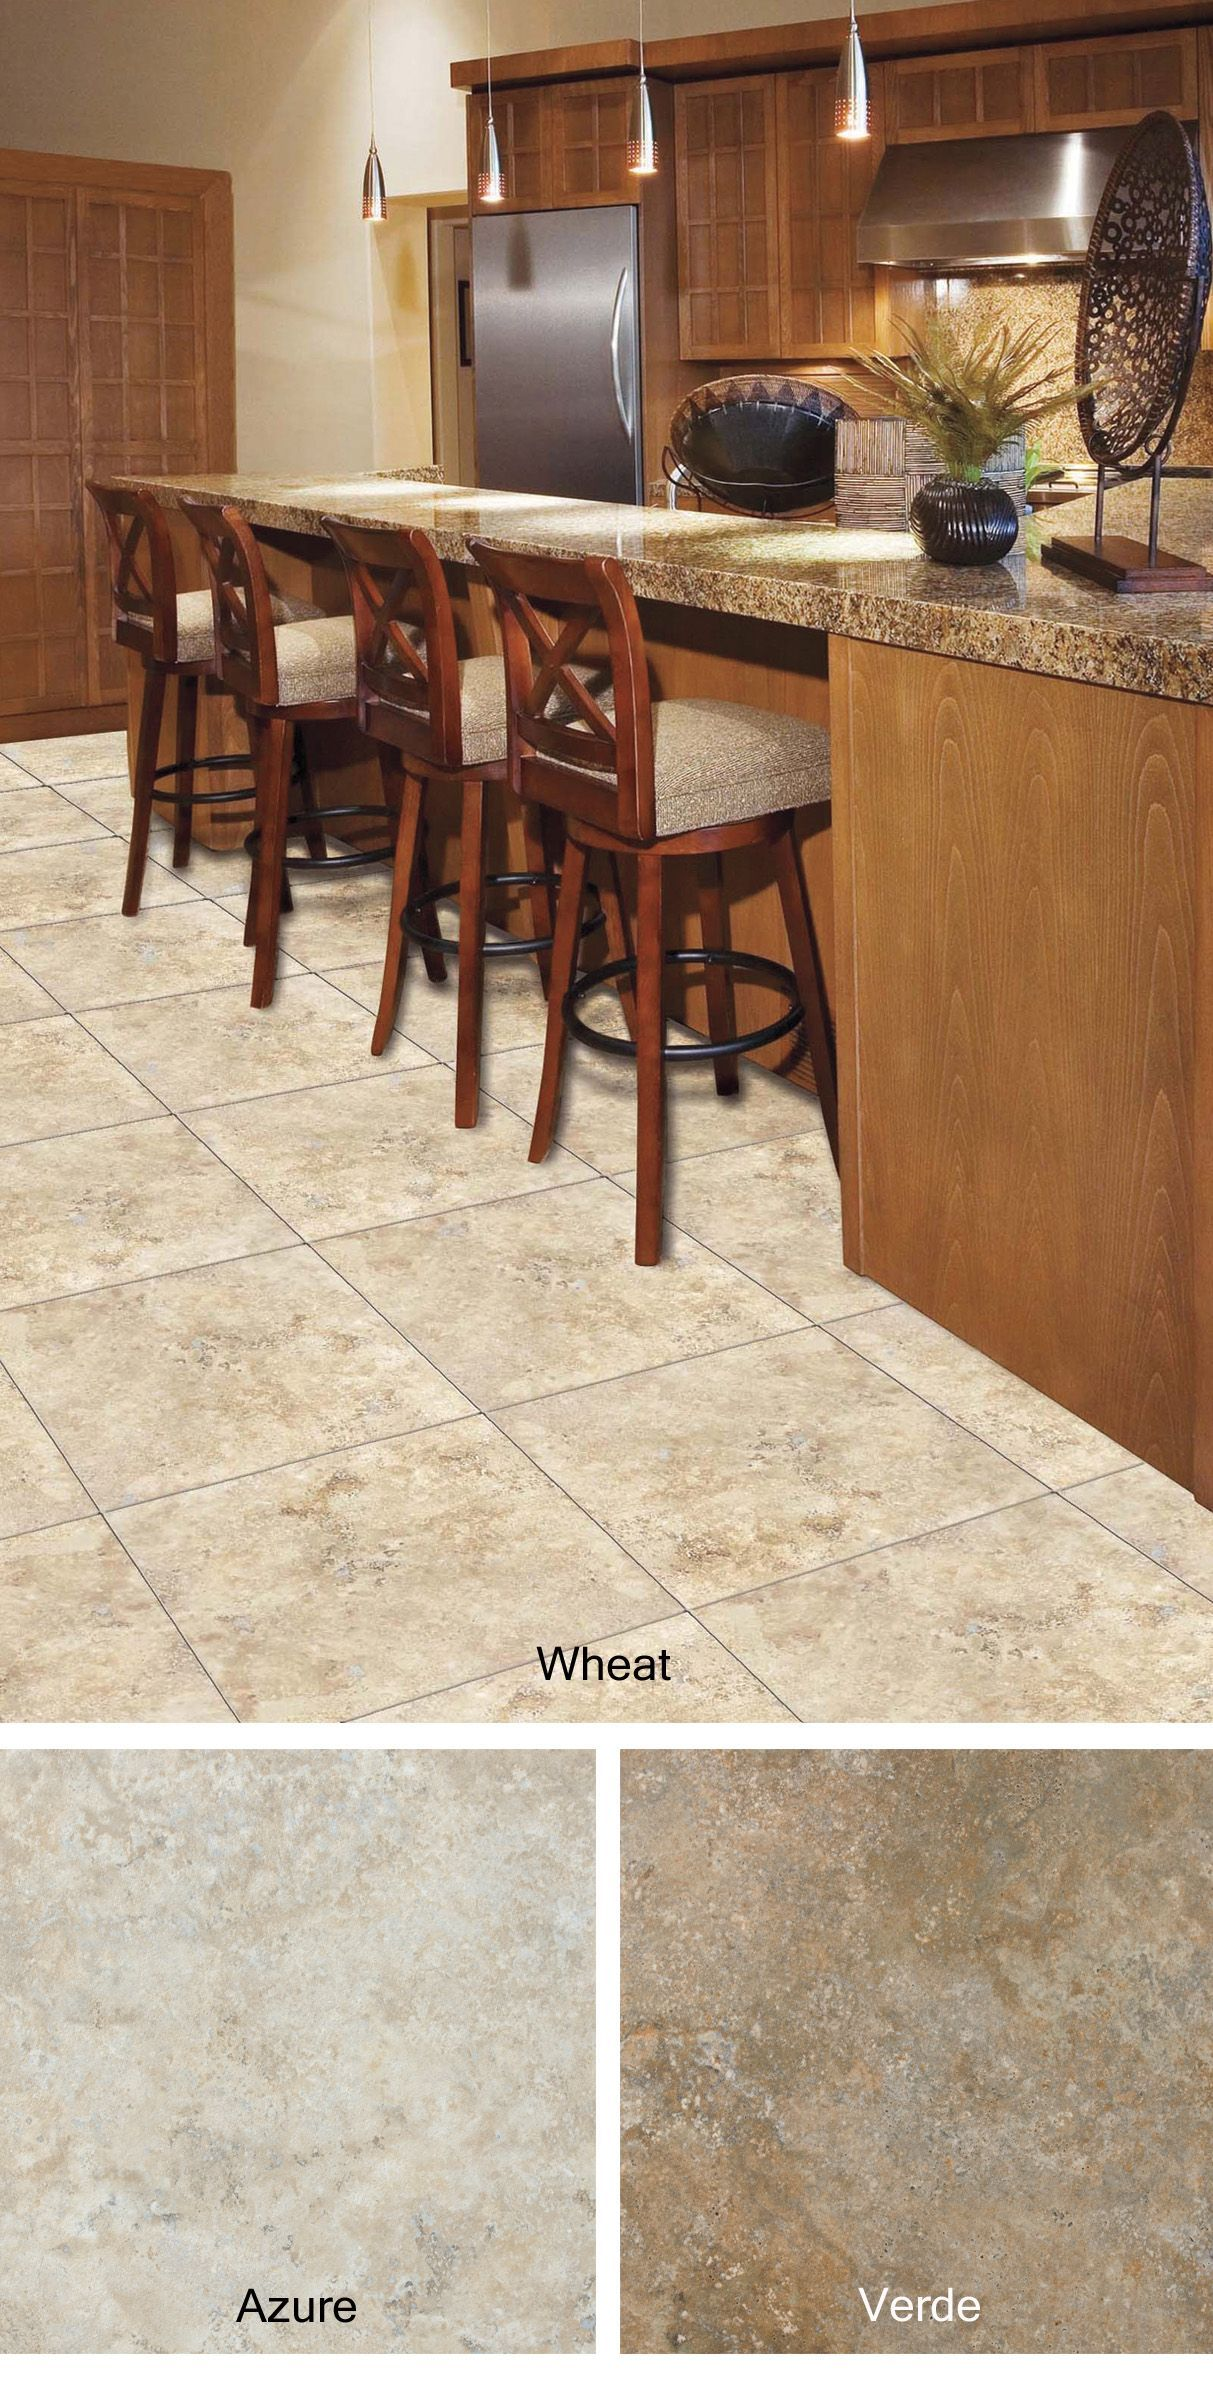 The Wheat Is A Luxury Vinyl Floor Tile That Groutable Made To Look Like Natural Cerami Flooring Kitchen